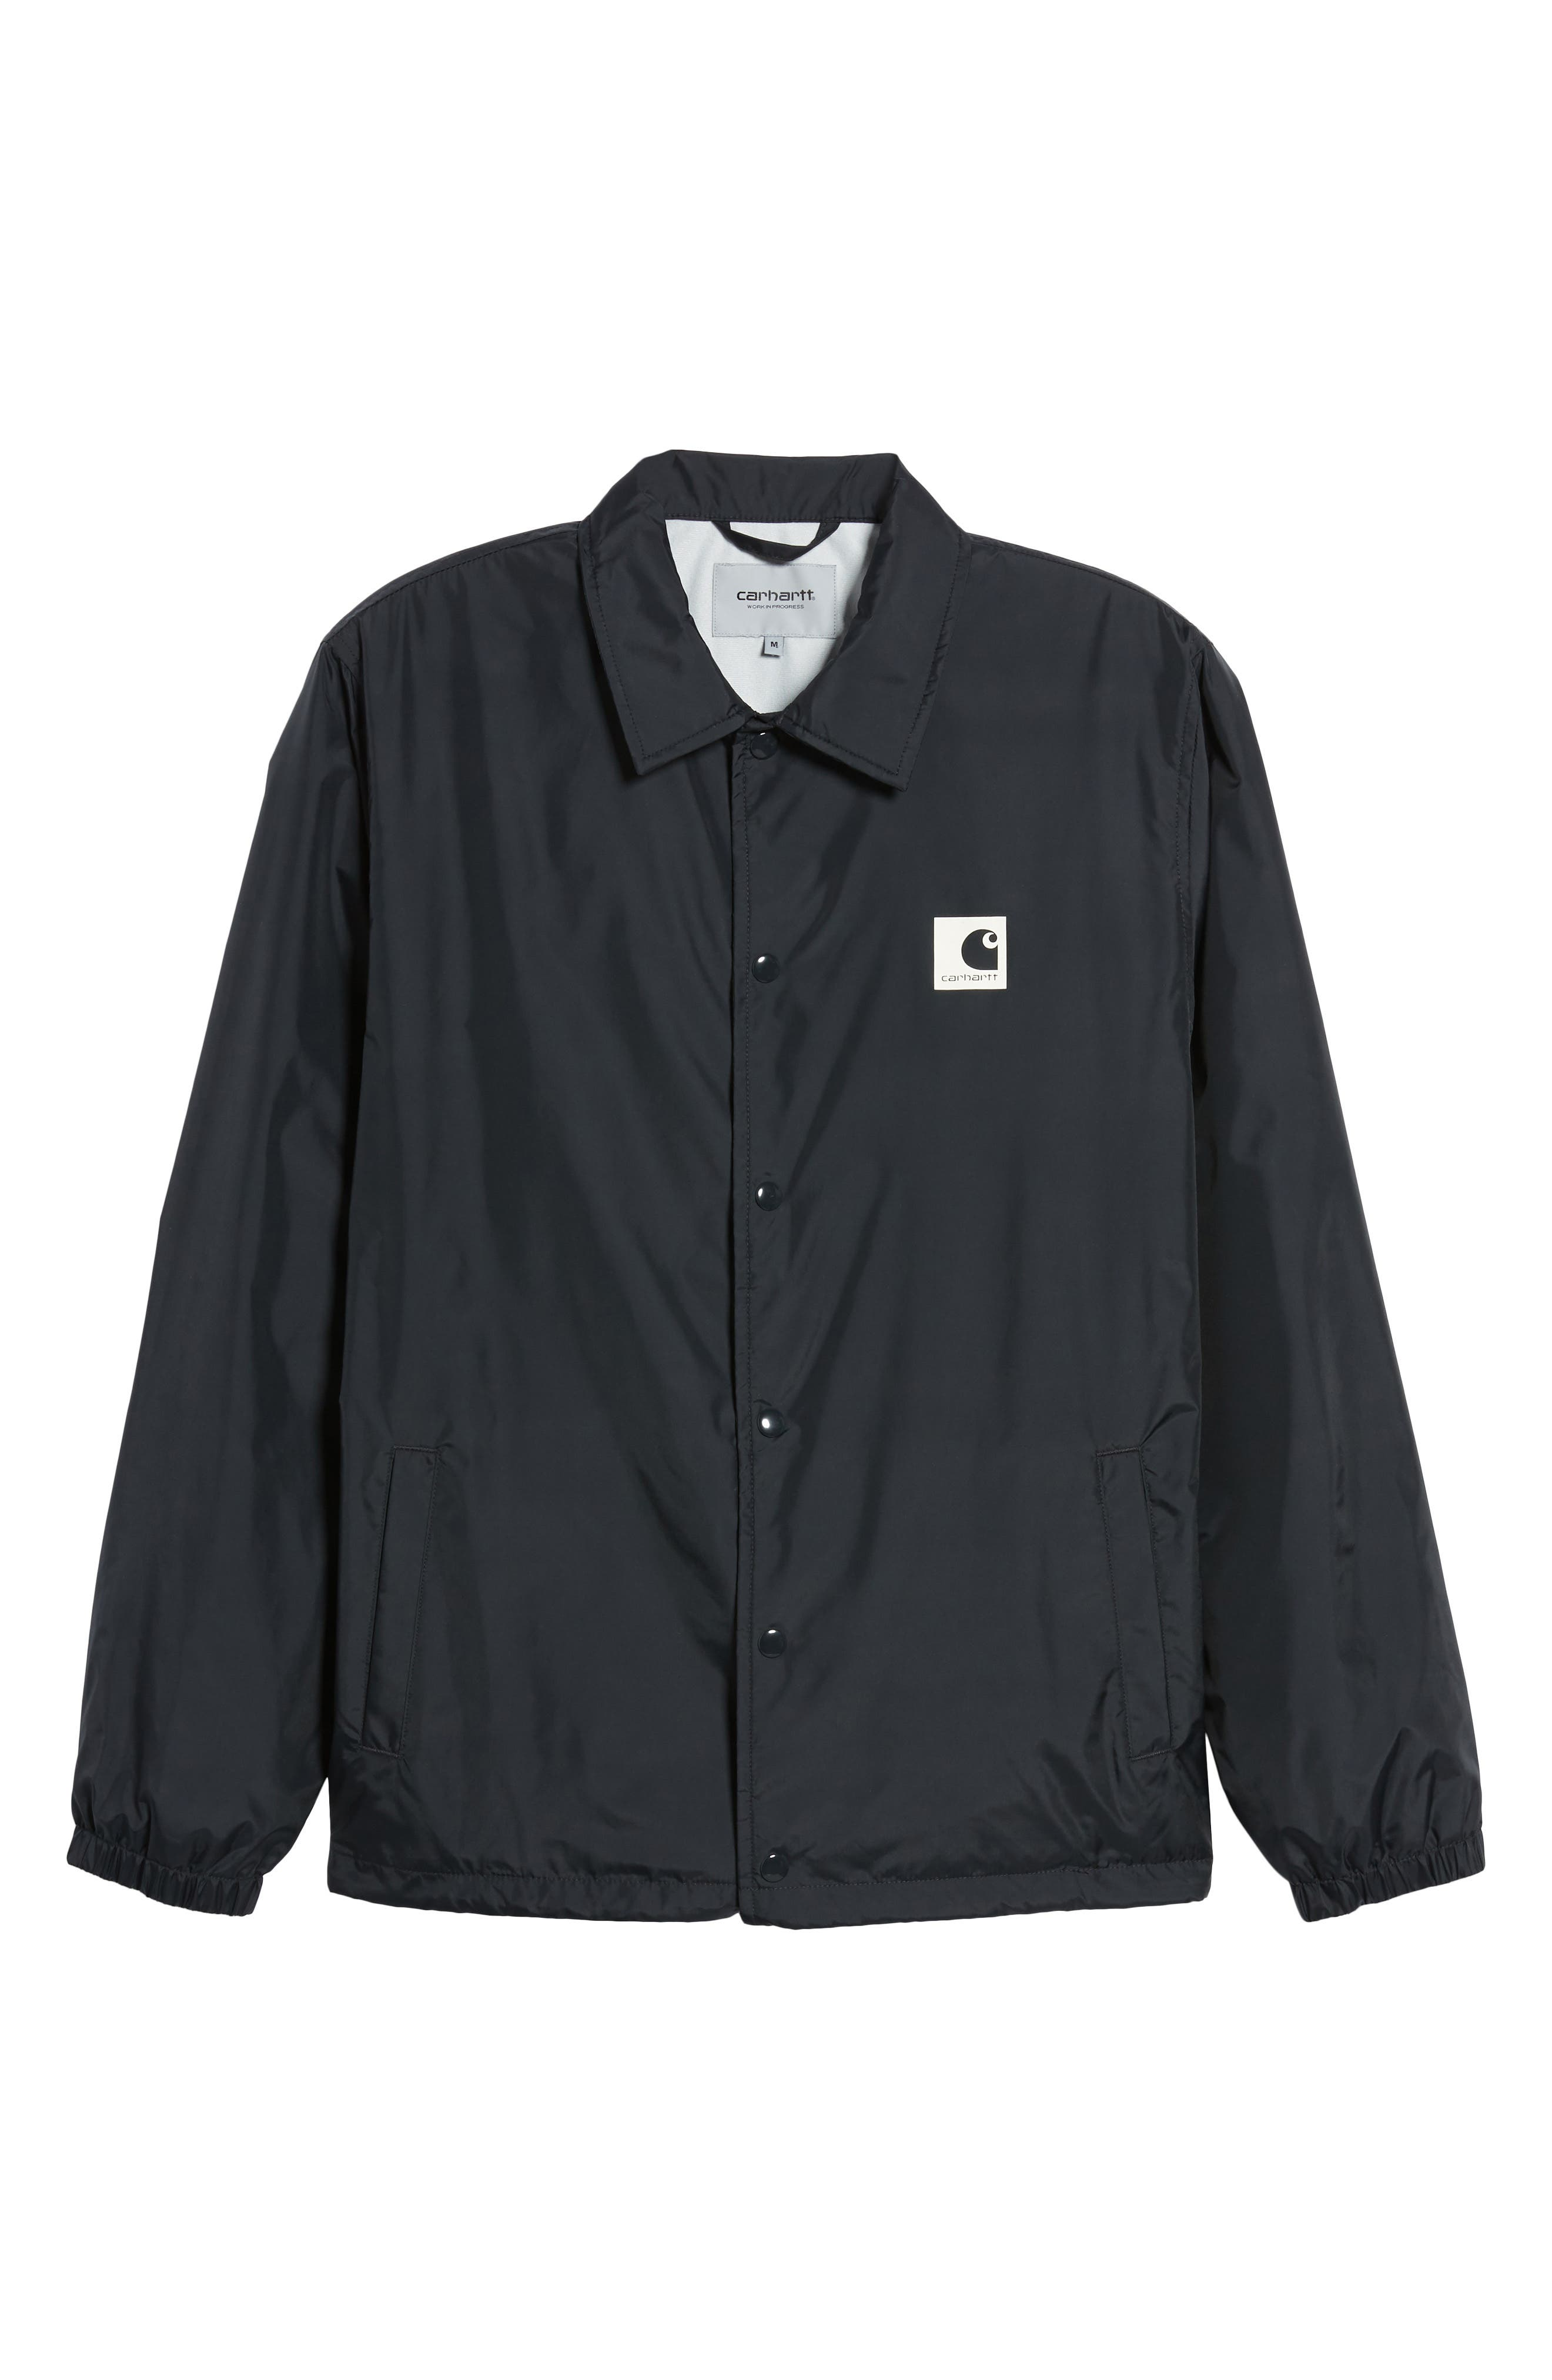 Sport Coach's Jacket,                             Alternate thumbnail 5, color,